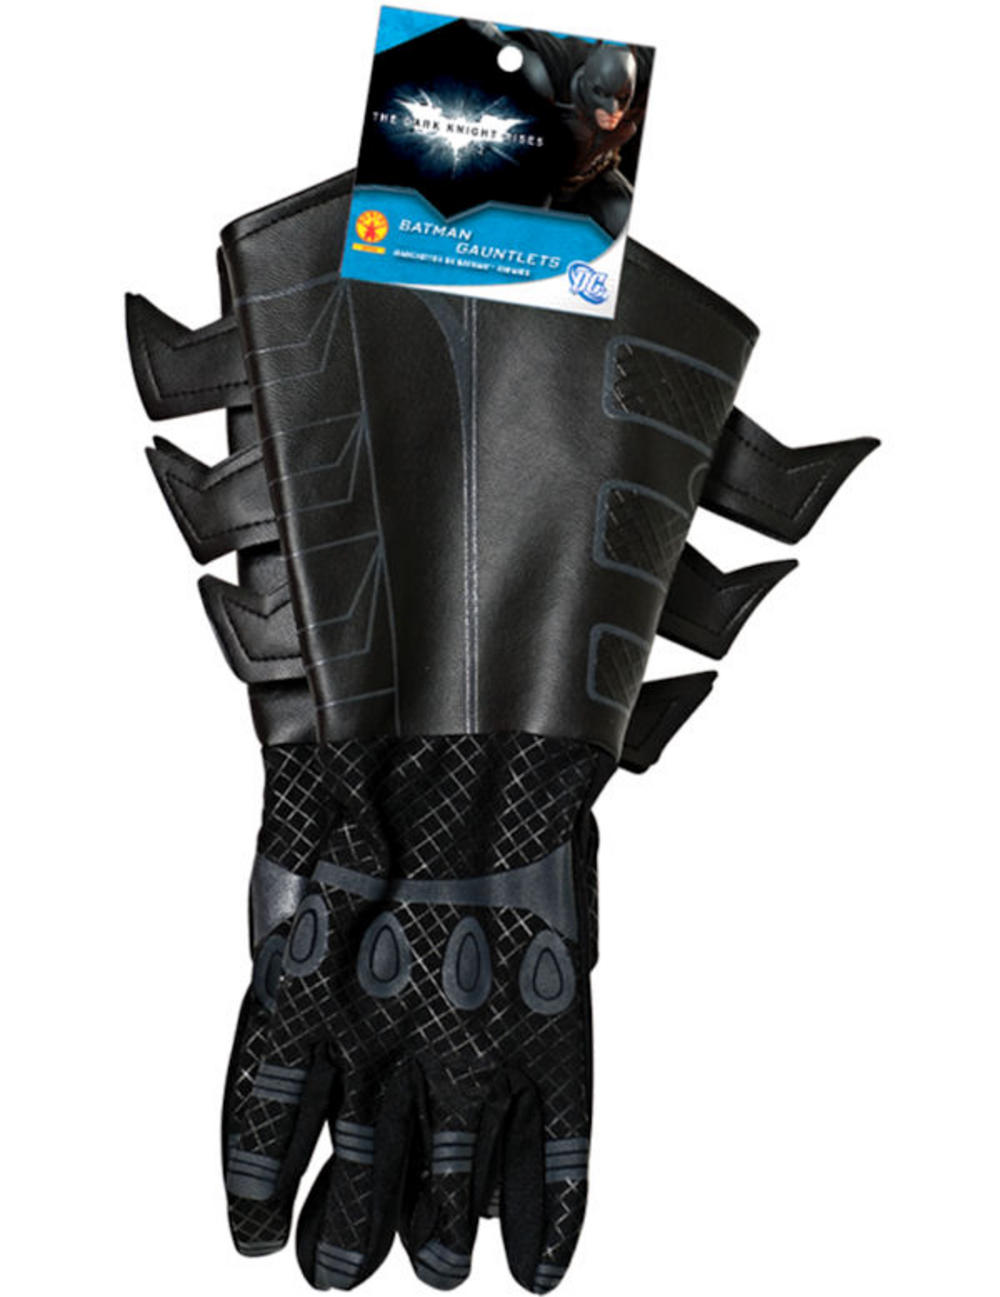 Batman Dark Knight Rises Gloves